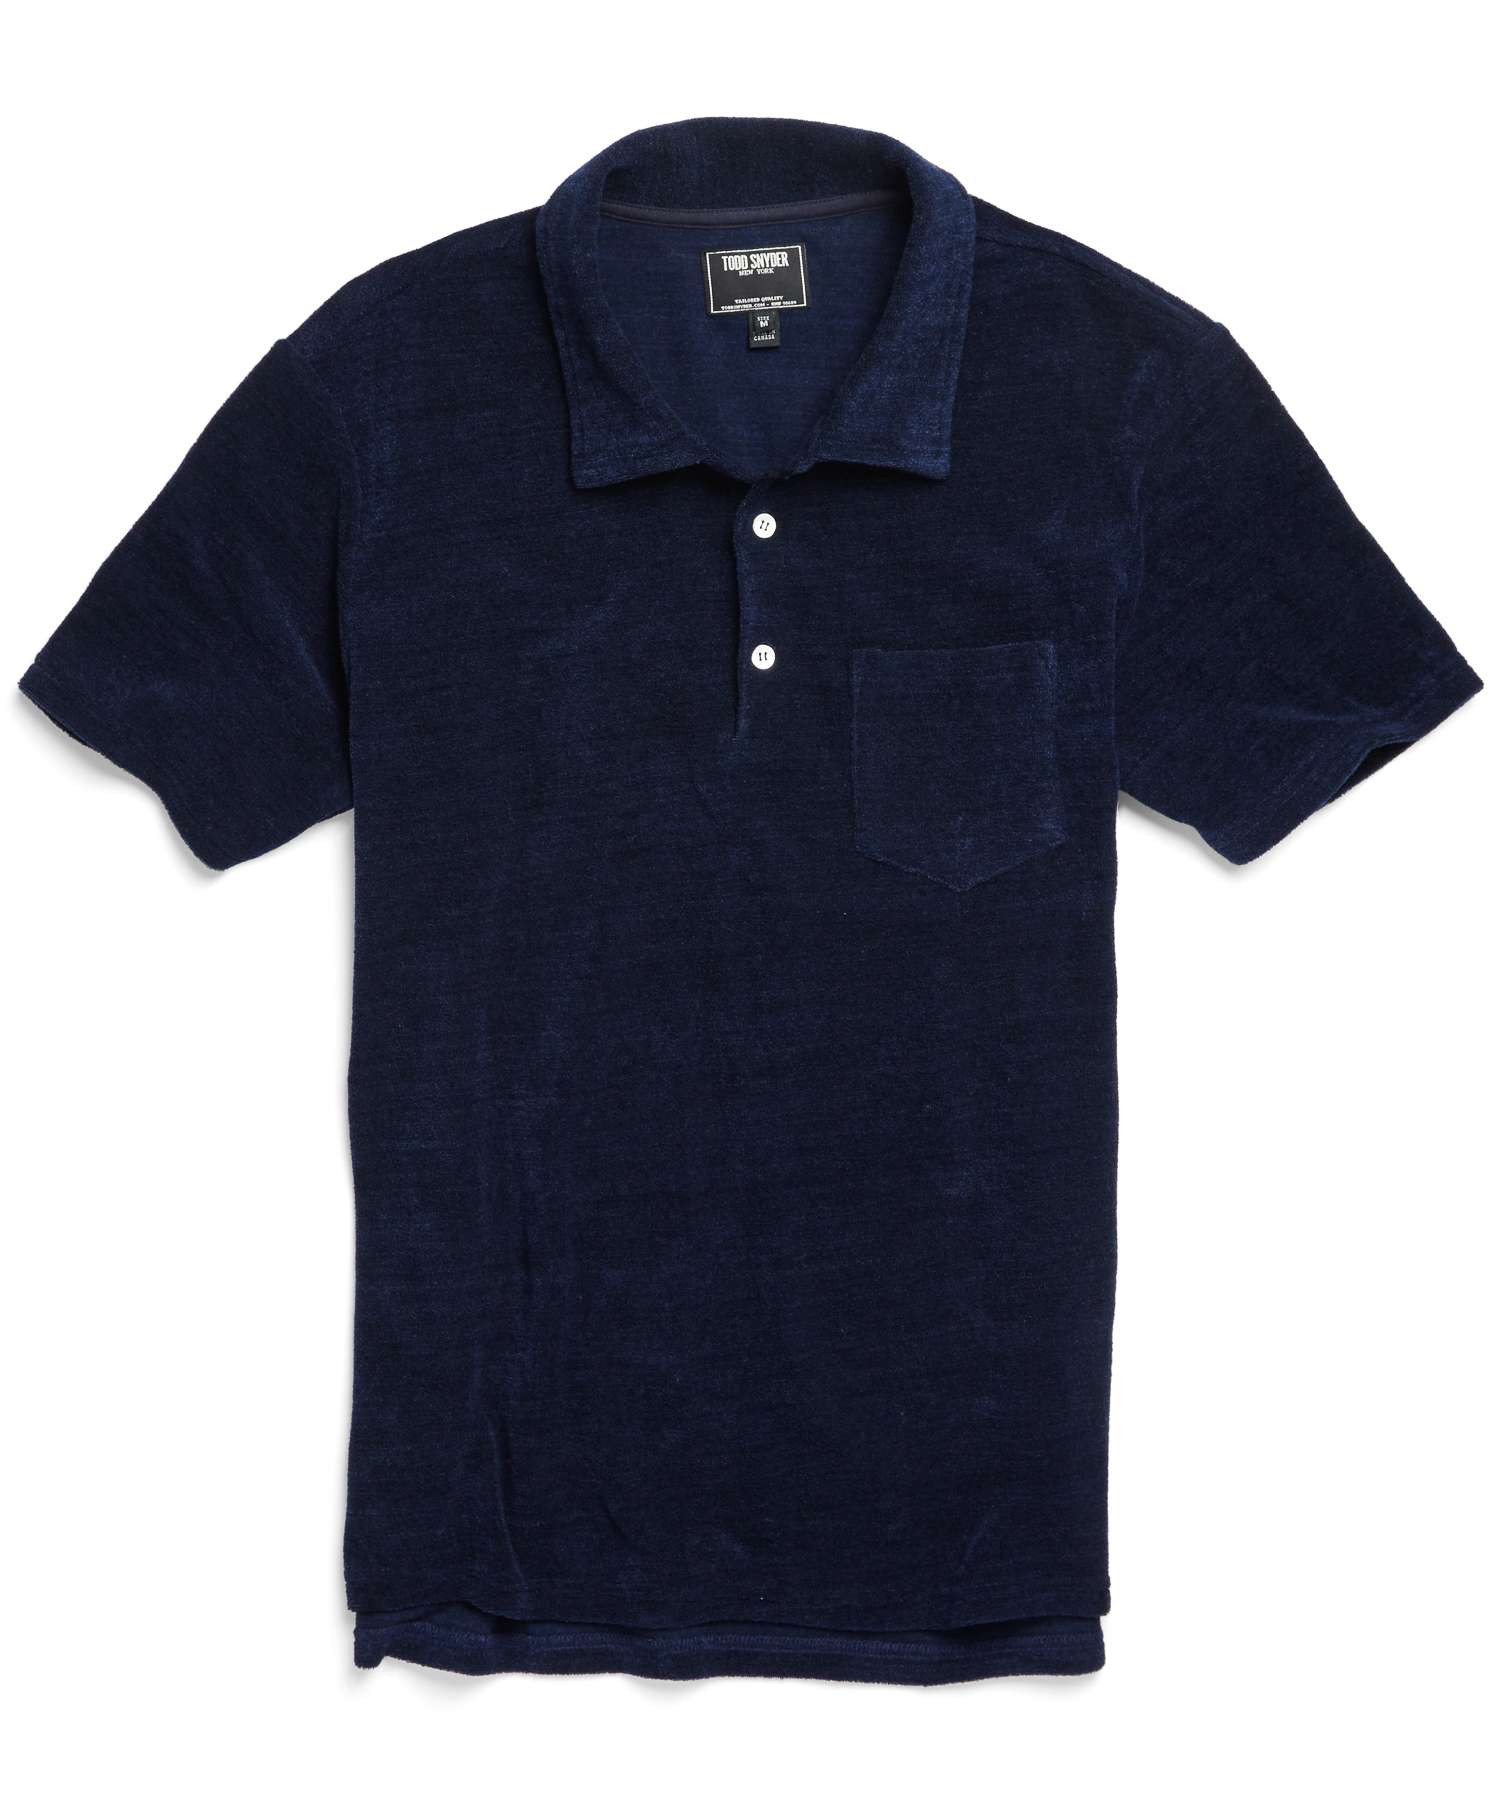 Todd snyder terry cloth polo in indigo in blue for men lyst for Terry cloth polo shirt